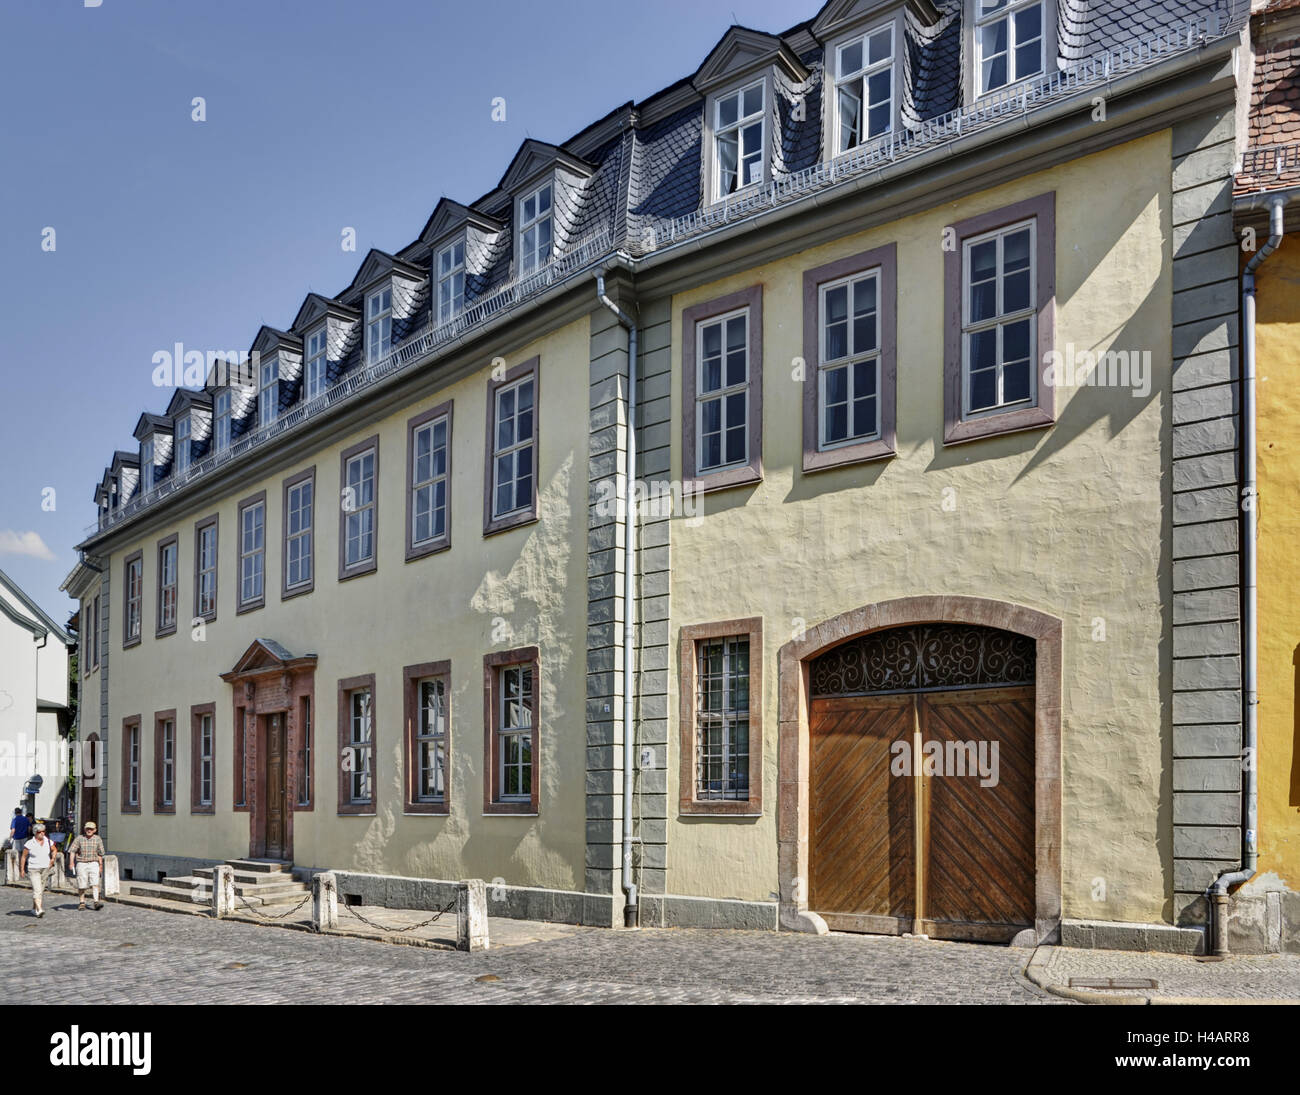 goethe house and museum stockfotos goethe house and museum bilder alamy. Black Bedroom Furniture Sets. Home Design Ideas